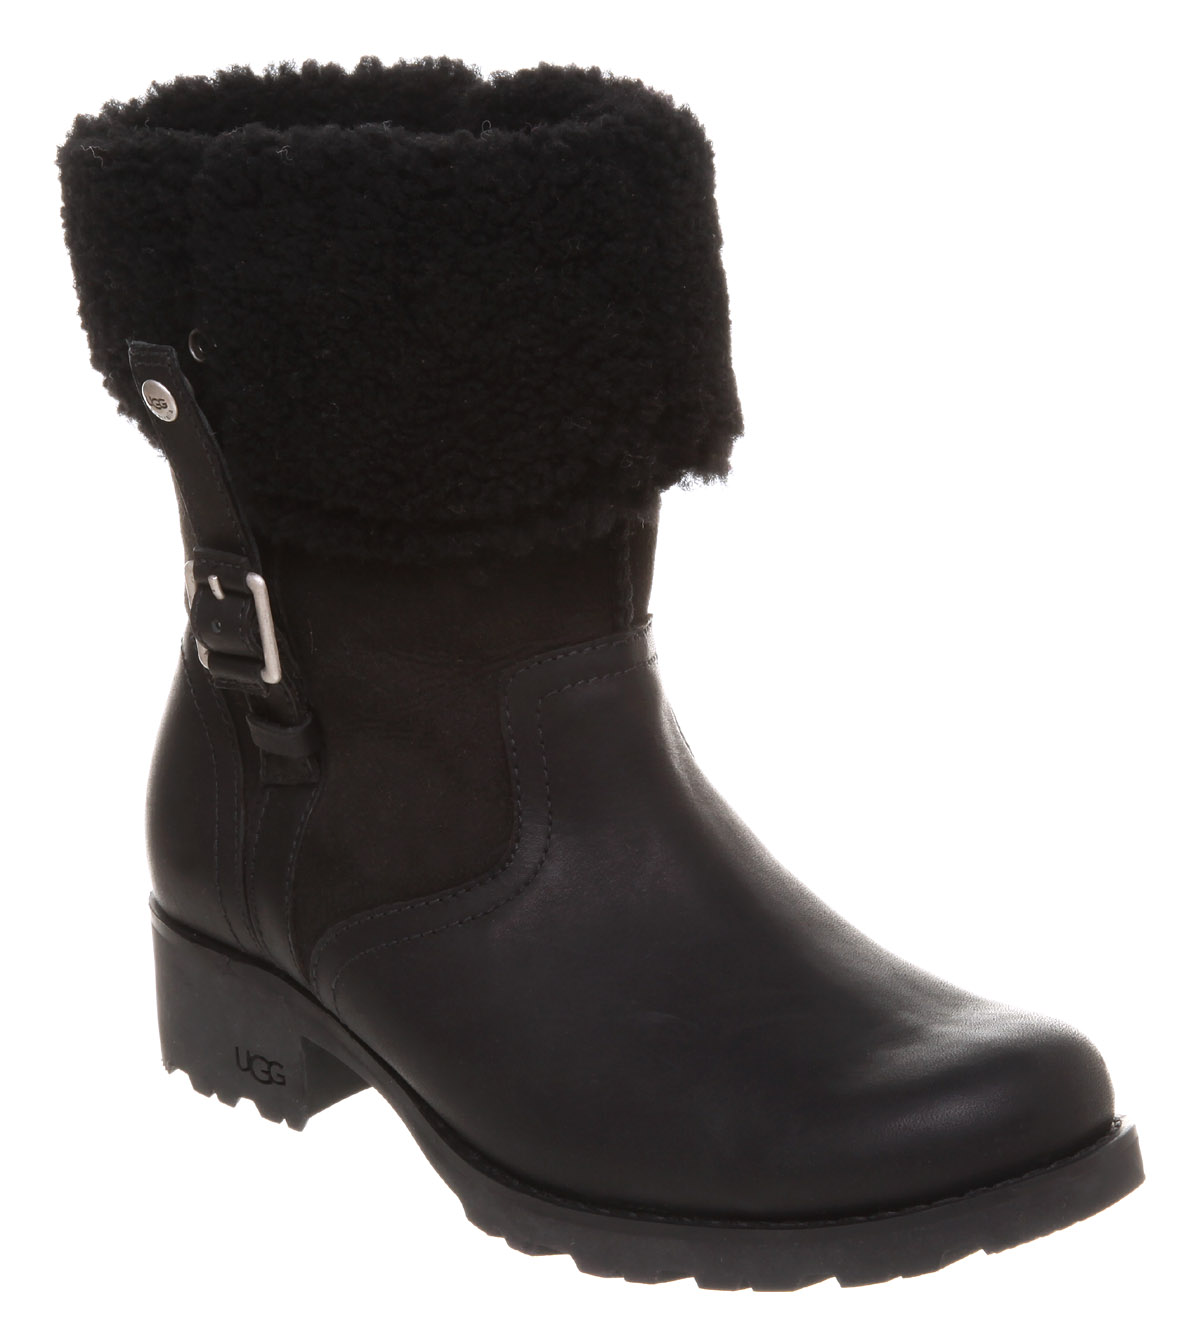 ugg waterproof womens boots